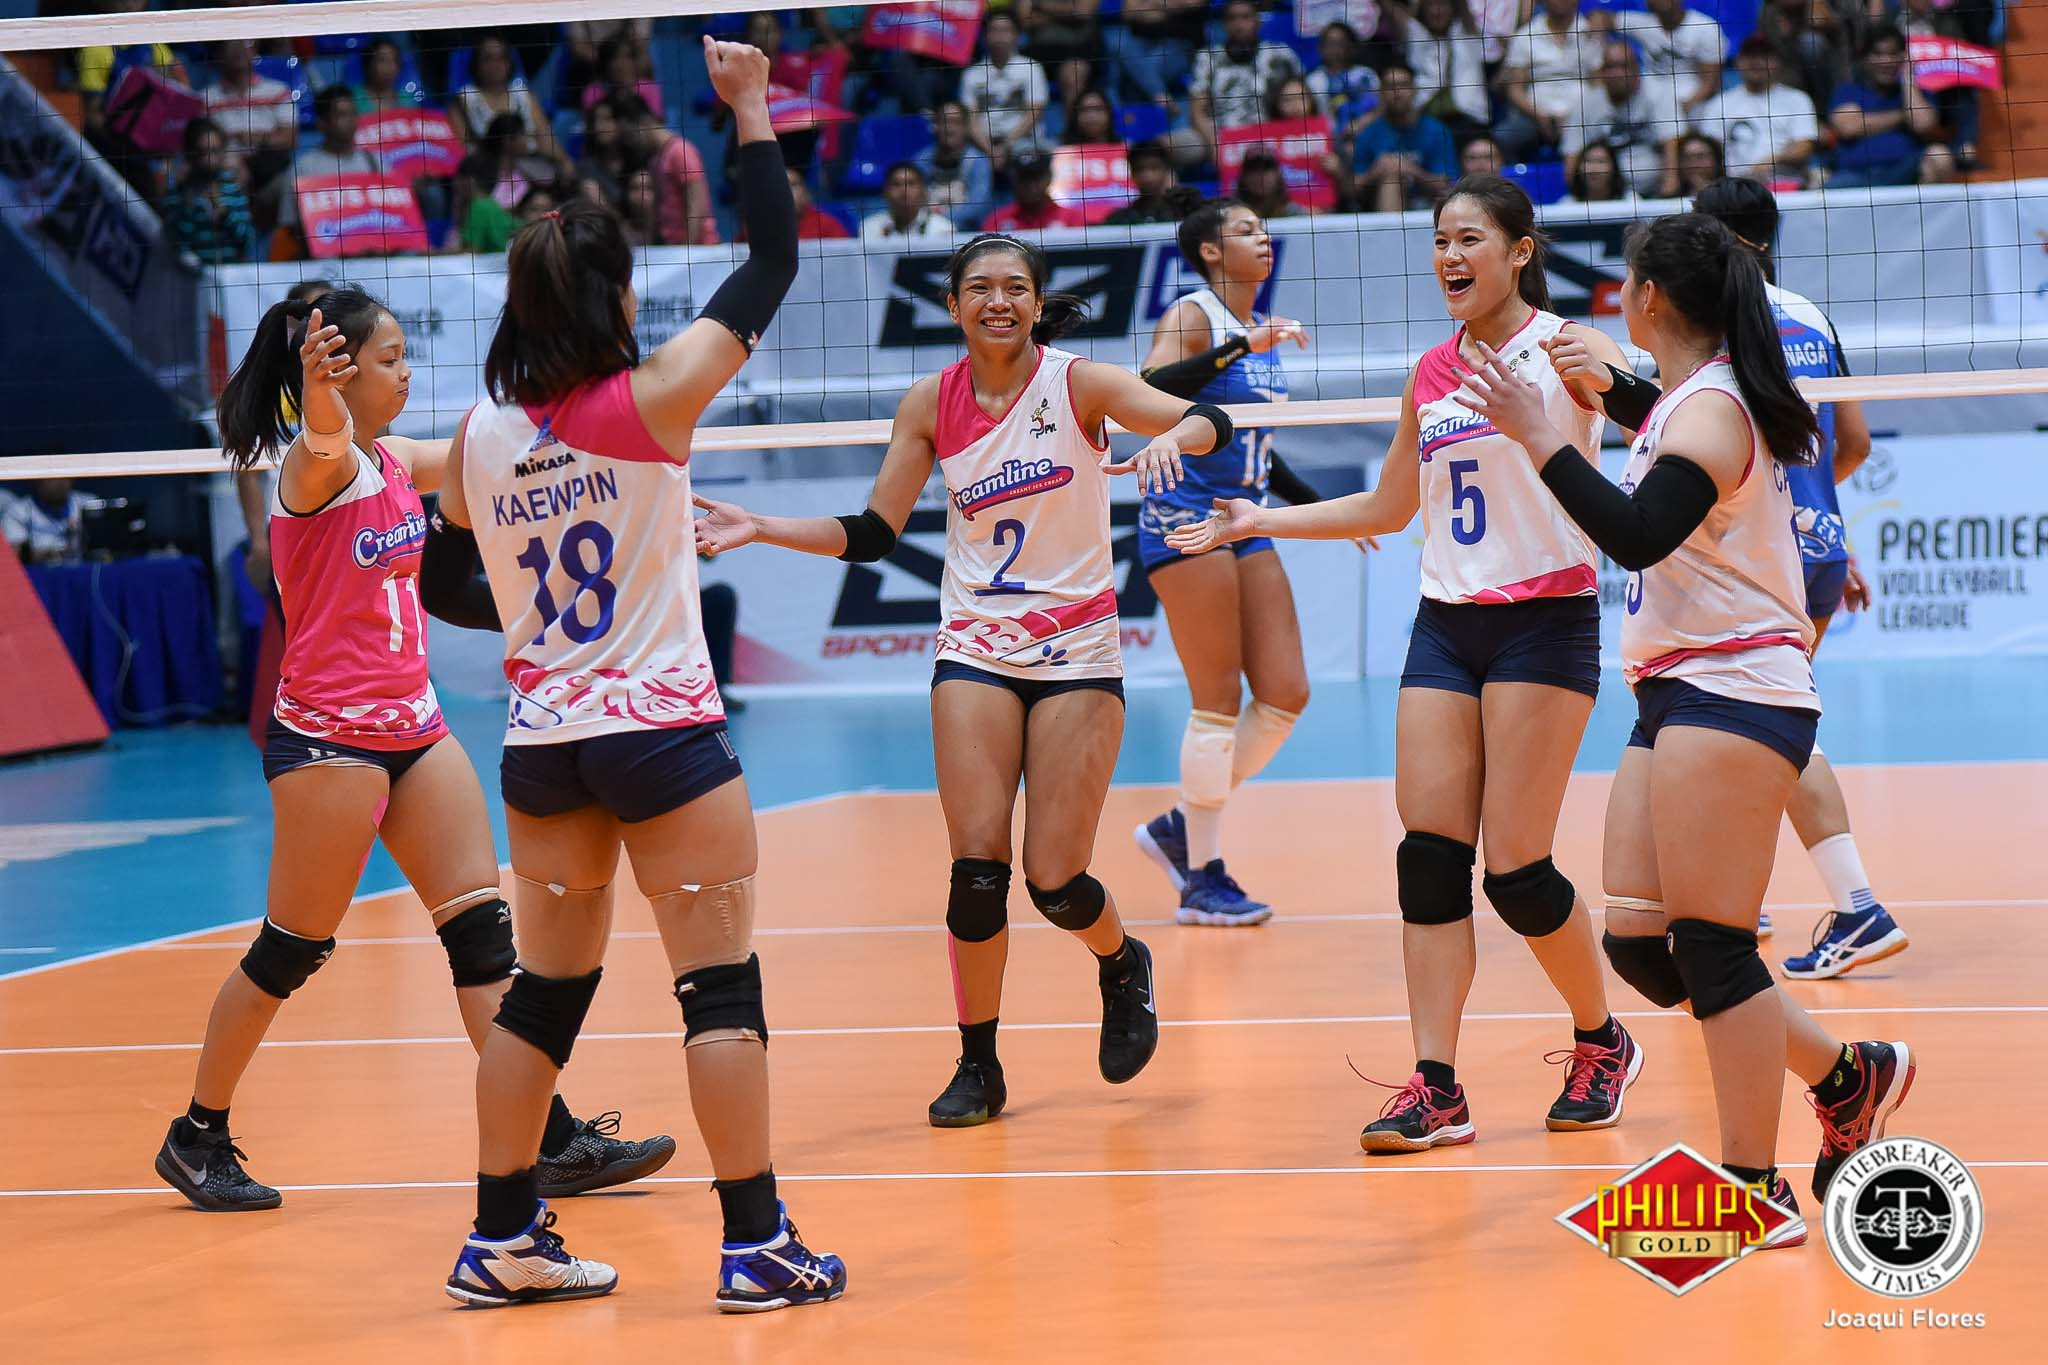 Tiebreaker Times After clinching Finals berth, Creamline, Alyssa Valdez to play with less pressure News PVL Volleyball  Creamline Cool Smashers Alyssa Valdez 2018 PVL Women's Reinforced Conference 2018 PVL Season